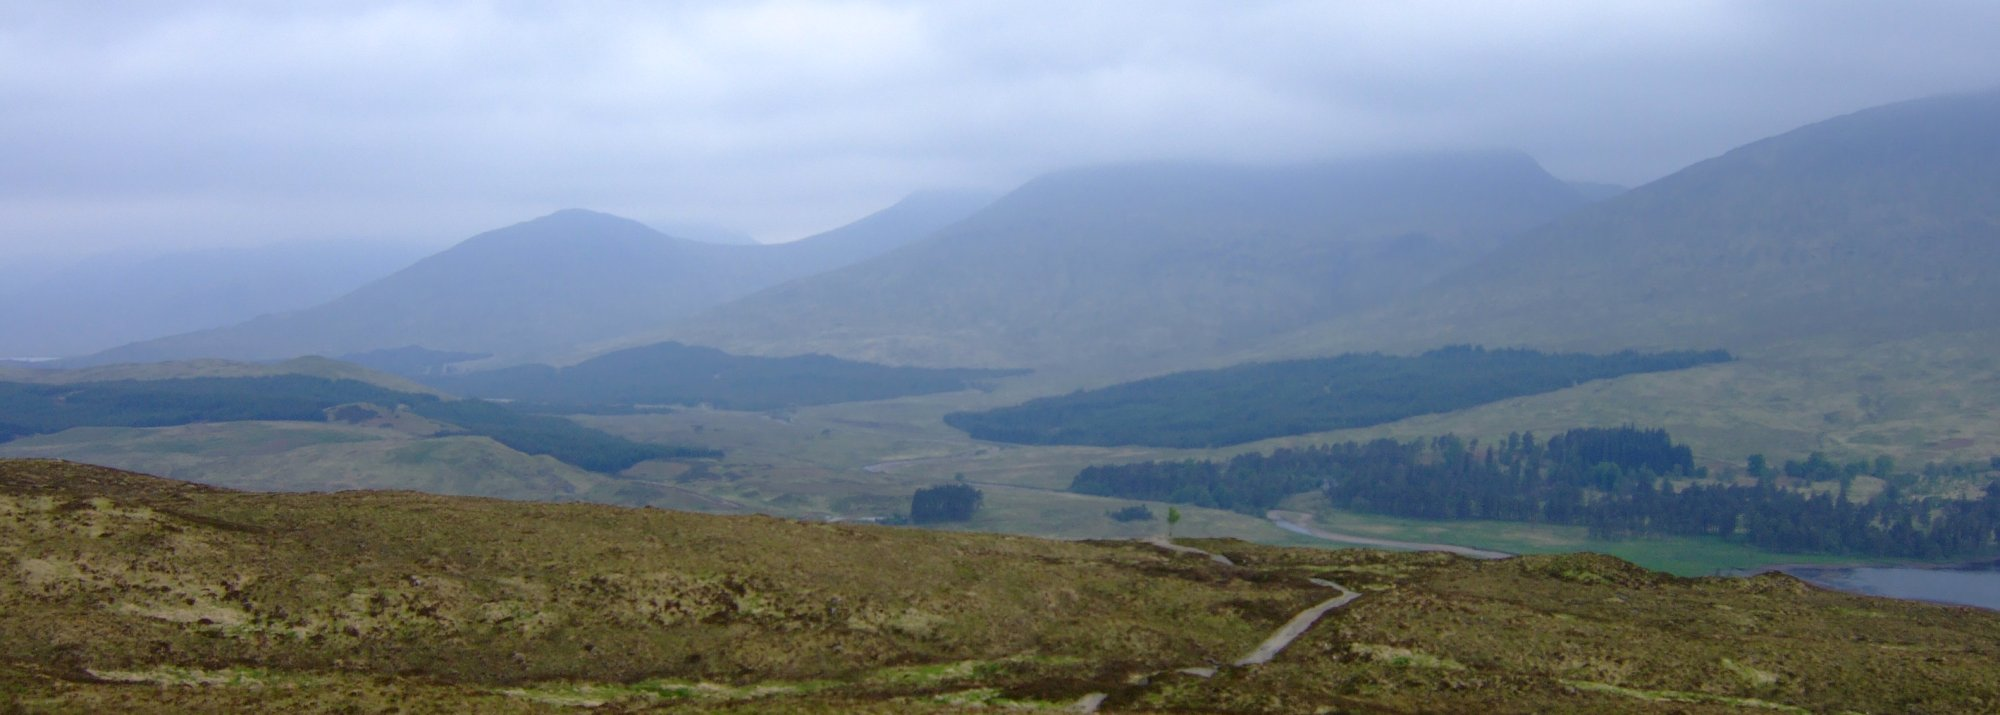 Looking down towards the Inveroran Hotel, Stob Ghabar with its head in the cloud